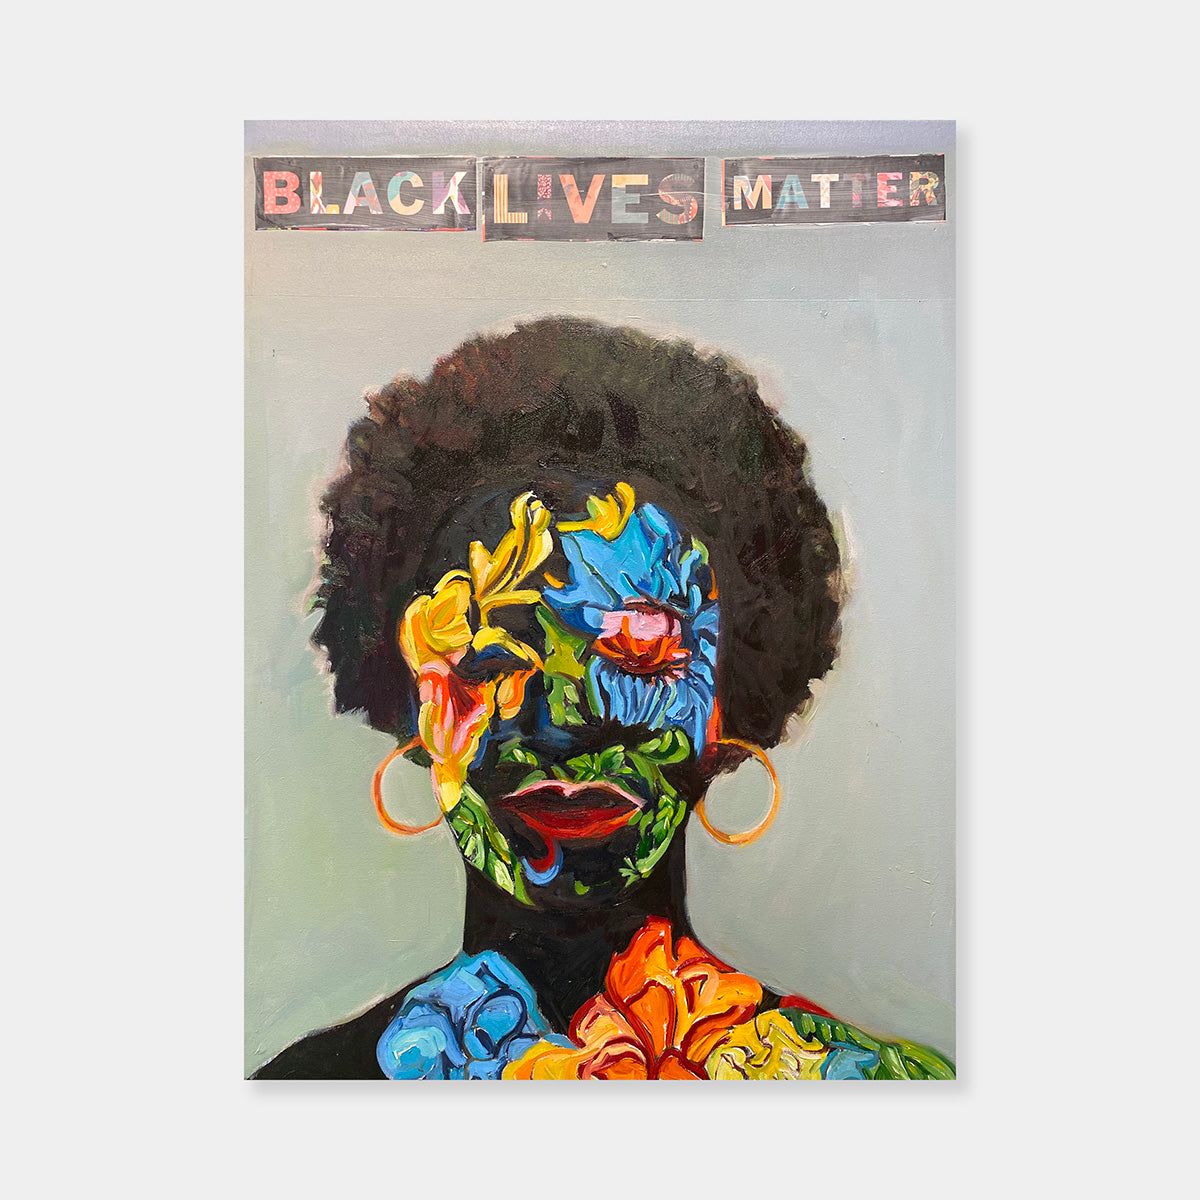 Artsuite - Beverly McIver - Black Lives Matter - Original Painting. McIver's autobiographical paintings are richly colorful and chronicle her life struggle with her African-American identity. Her voice in these works is brave and bold and the different interpretations by white and black viewers highlights the collision of the worlds that she straddles daily.